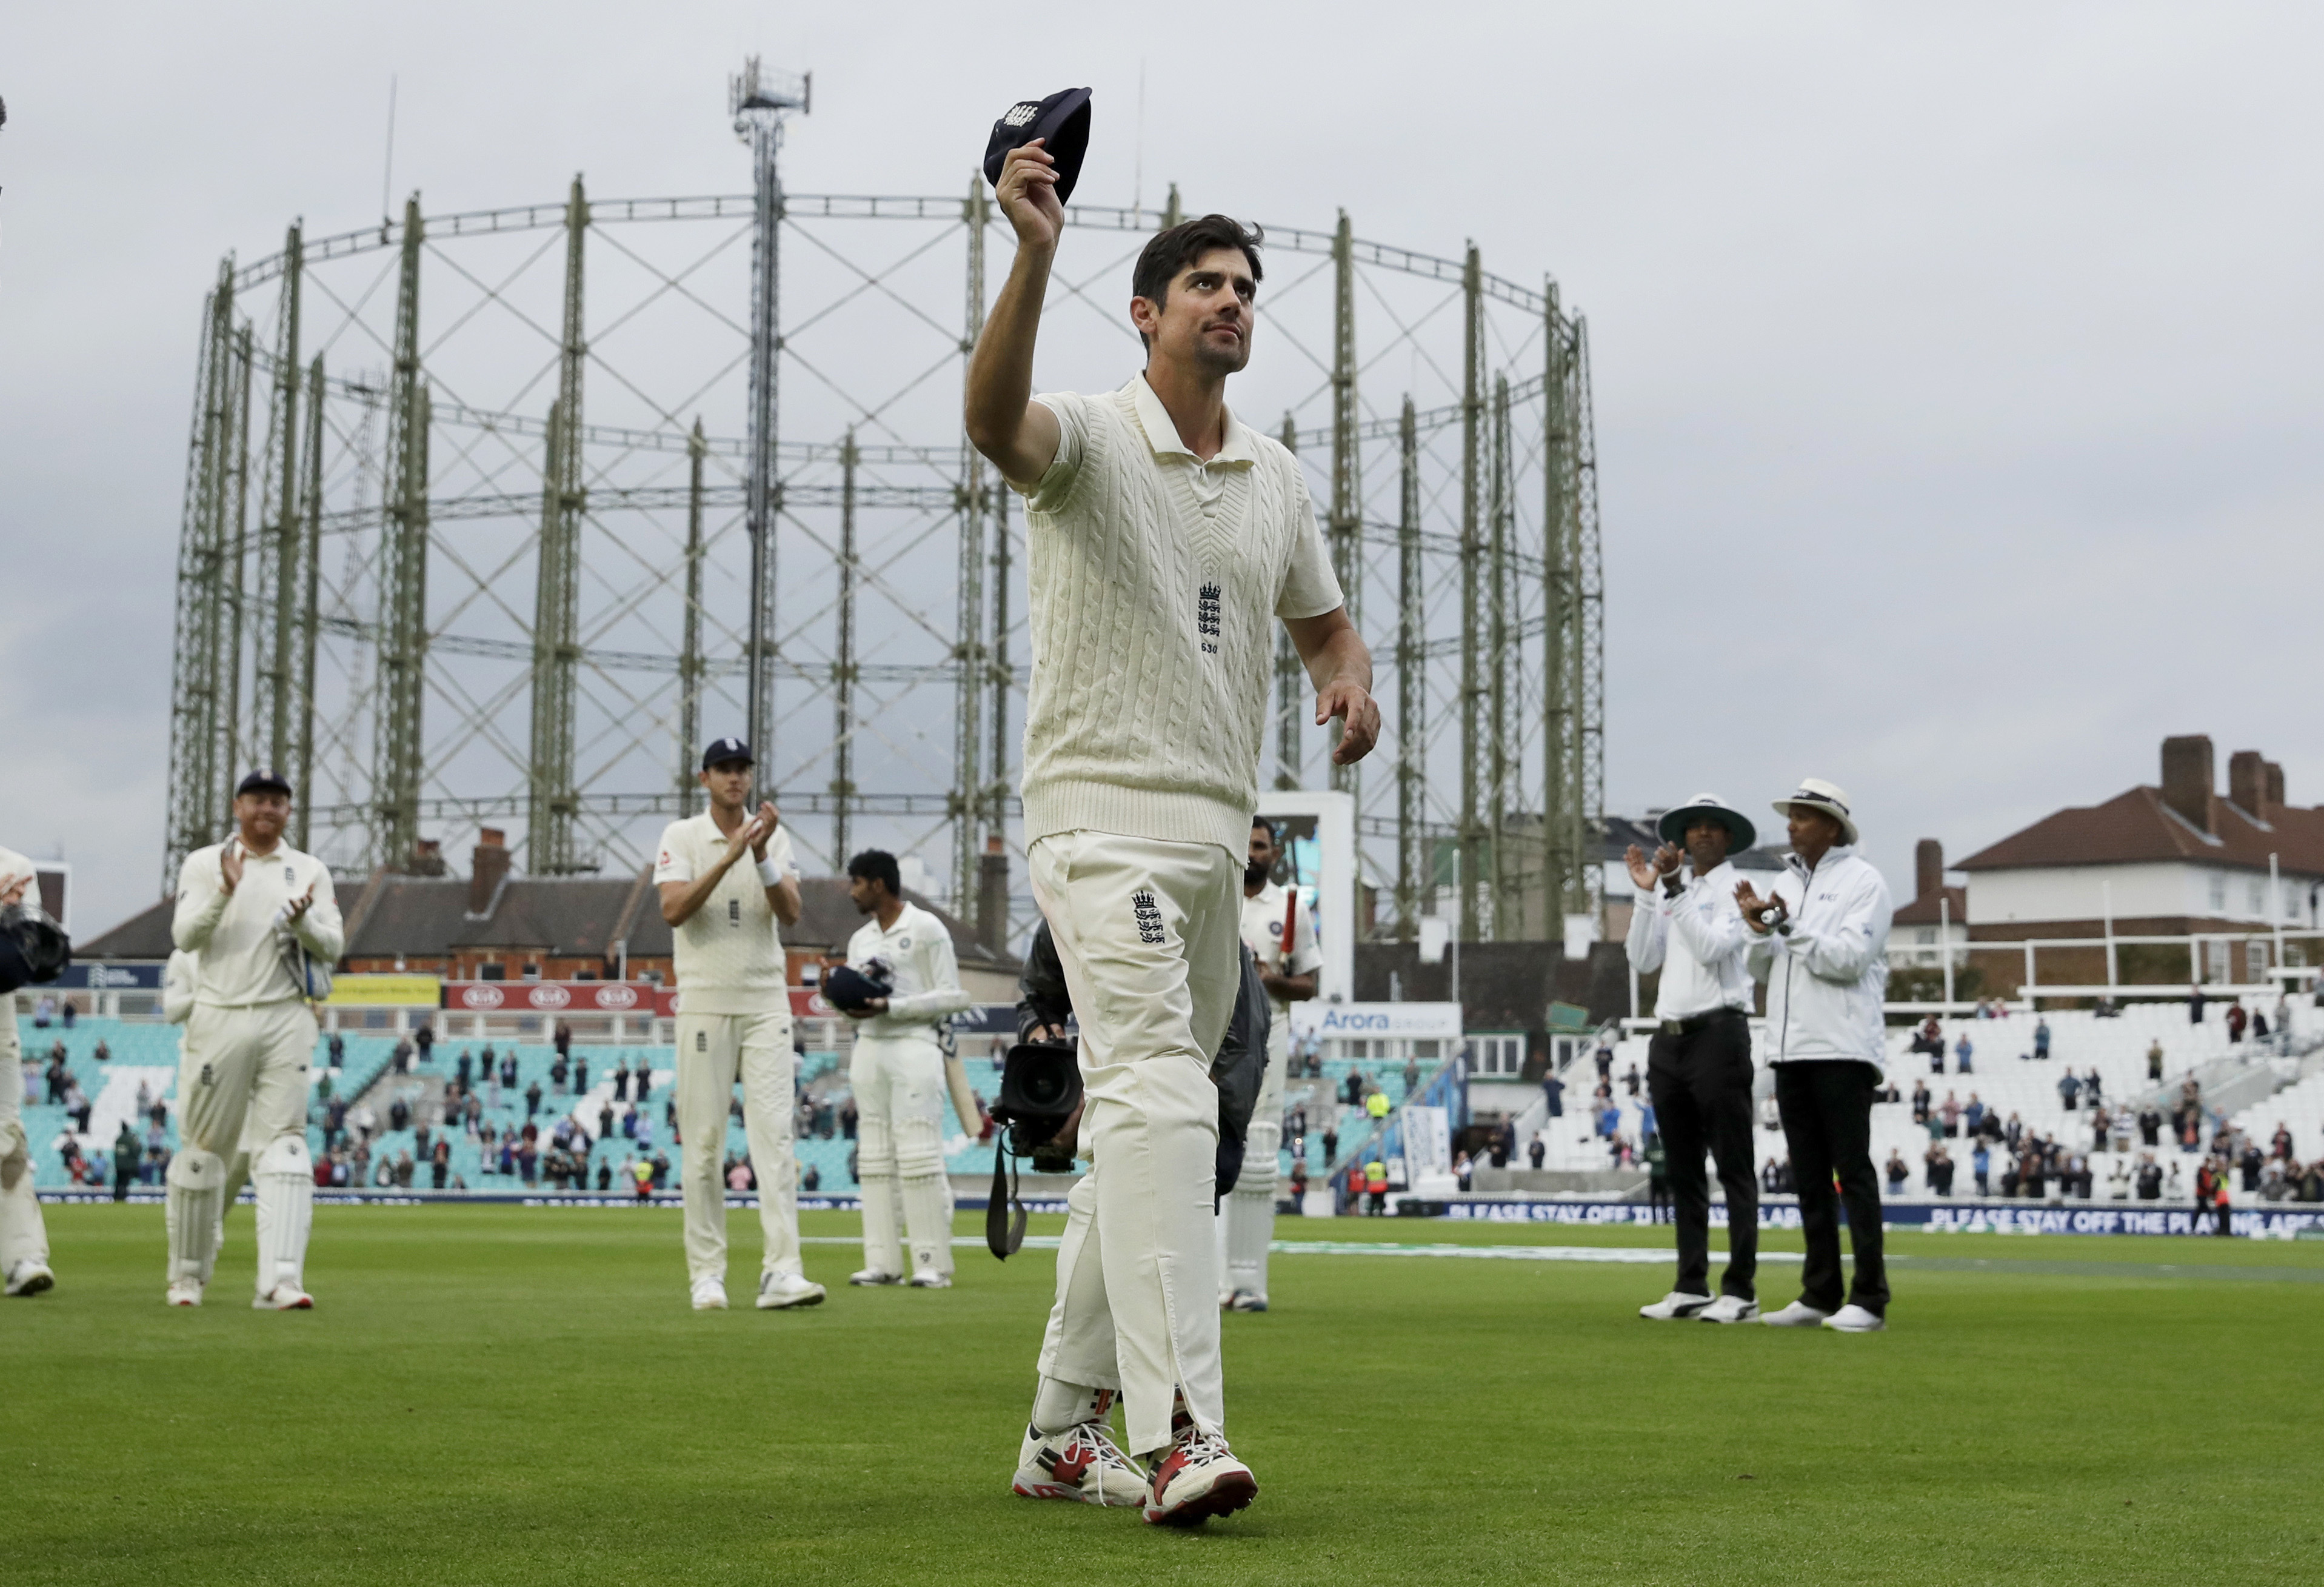 England's Alastair Cook, at the end of his final match before retiring from test cricket, raises his cap as he walks off at the end of the fifth cricket test match of a five match series between England and India at the Oval cricket ground in London - AP